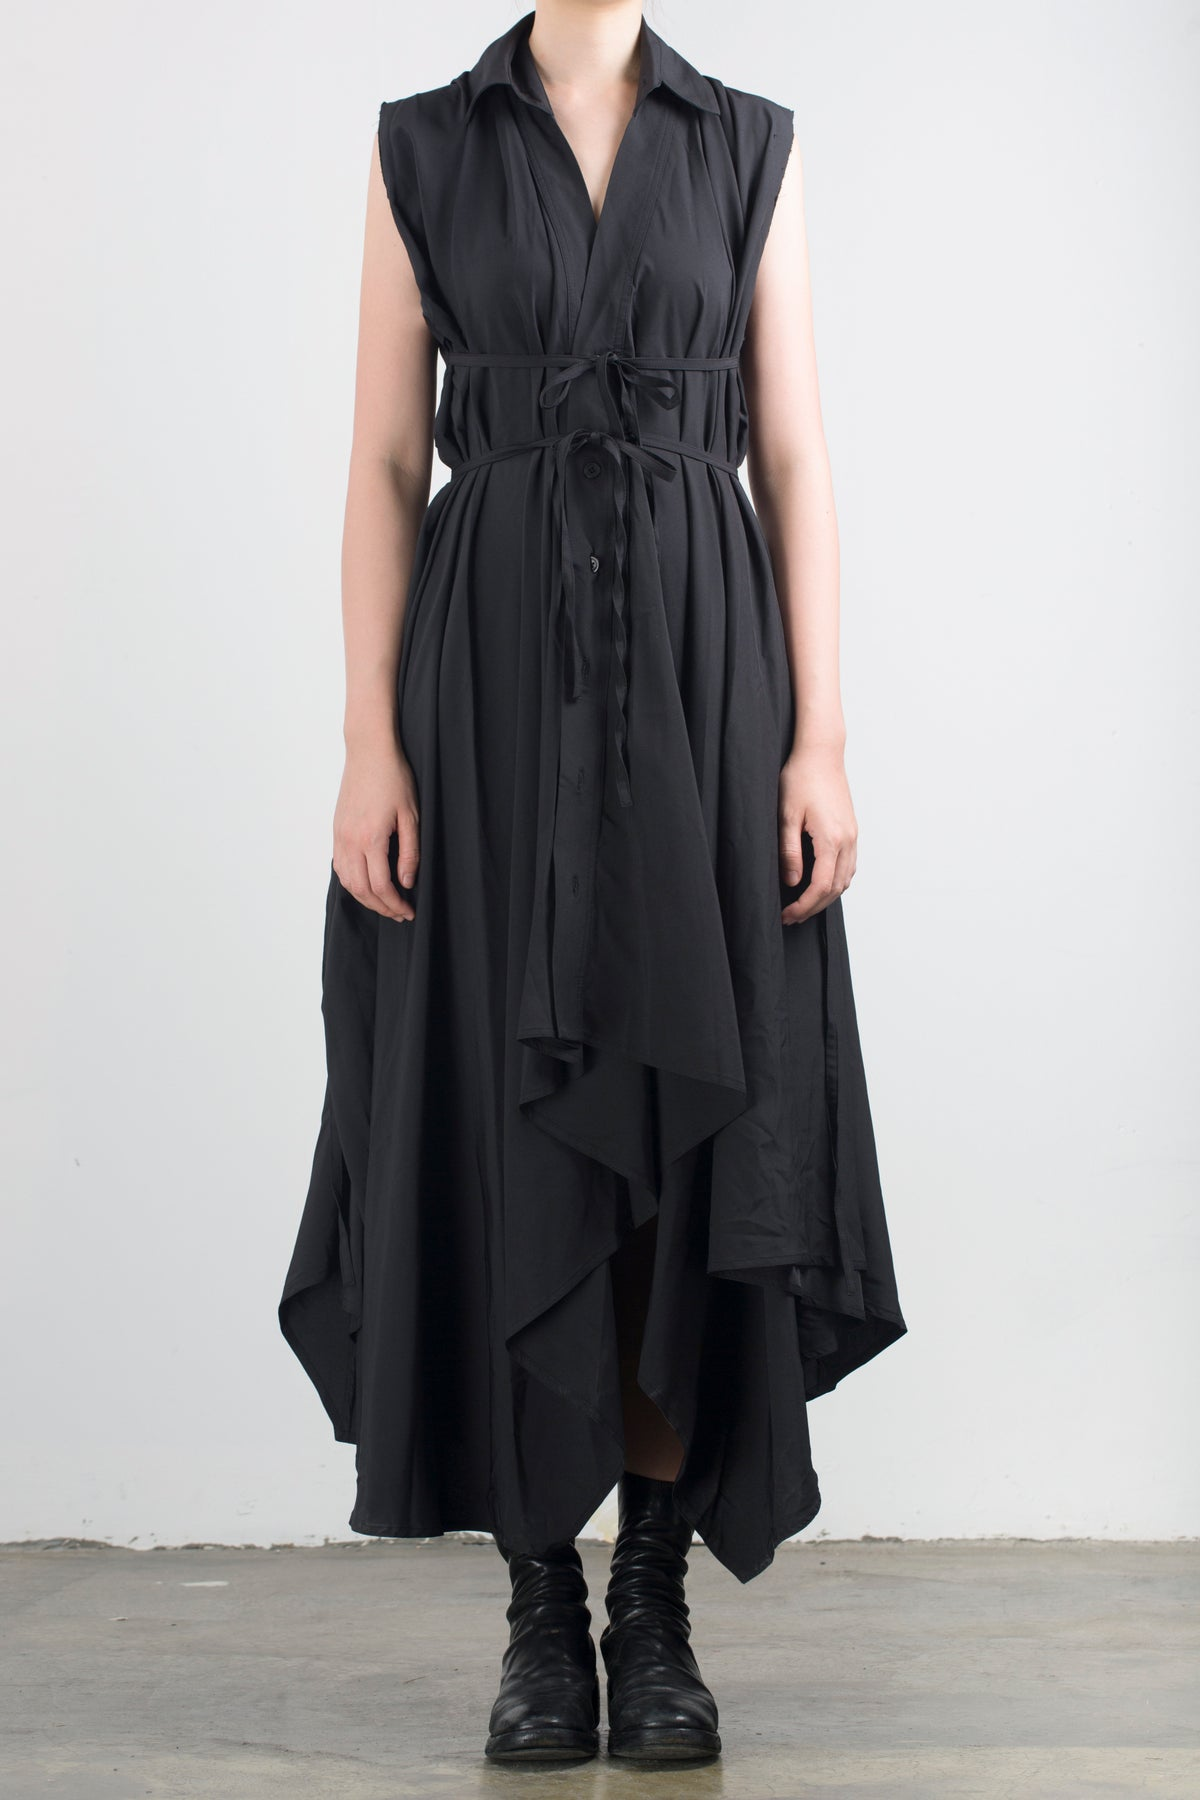 Image of Multi-Way Asymmetric Lace Up Sleeveless Dress Black